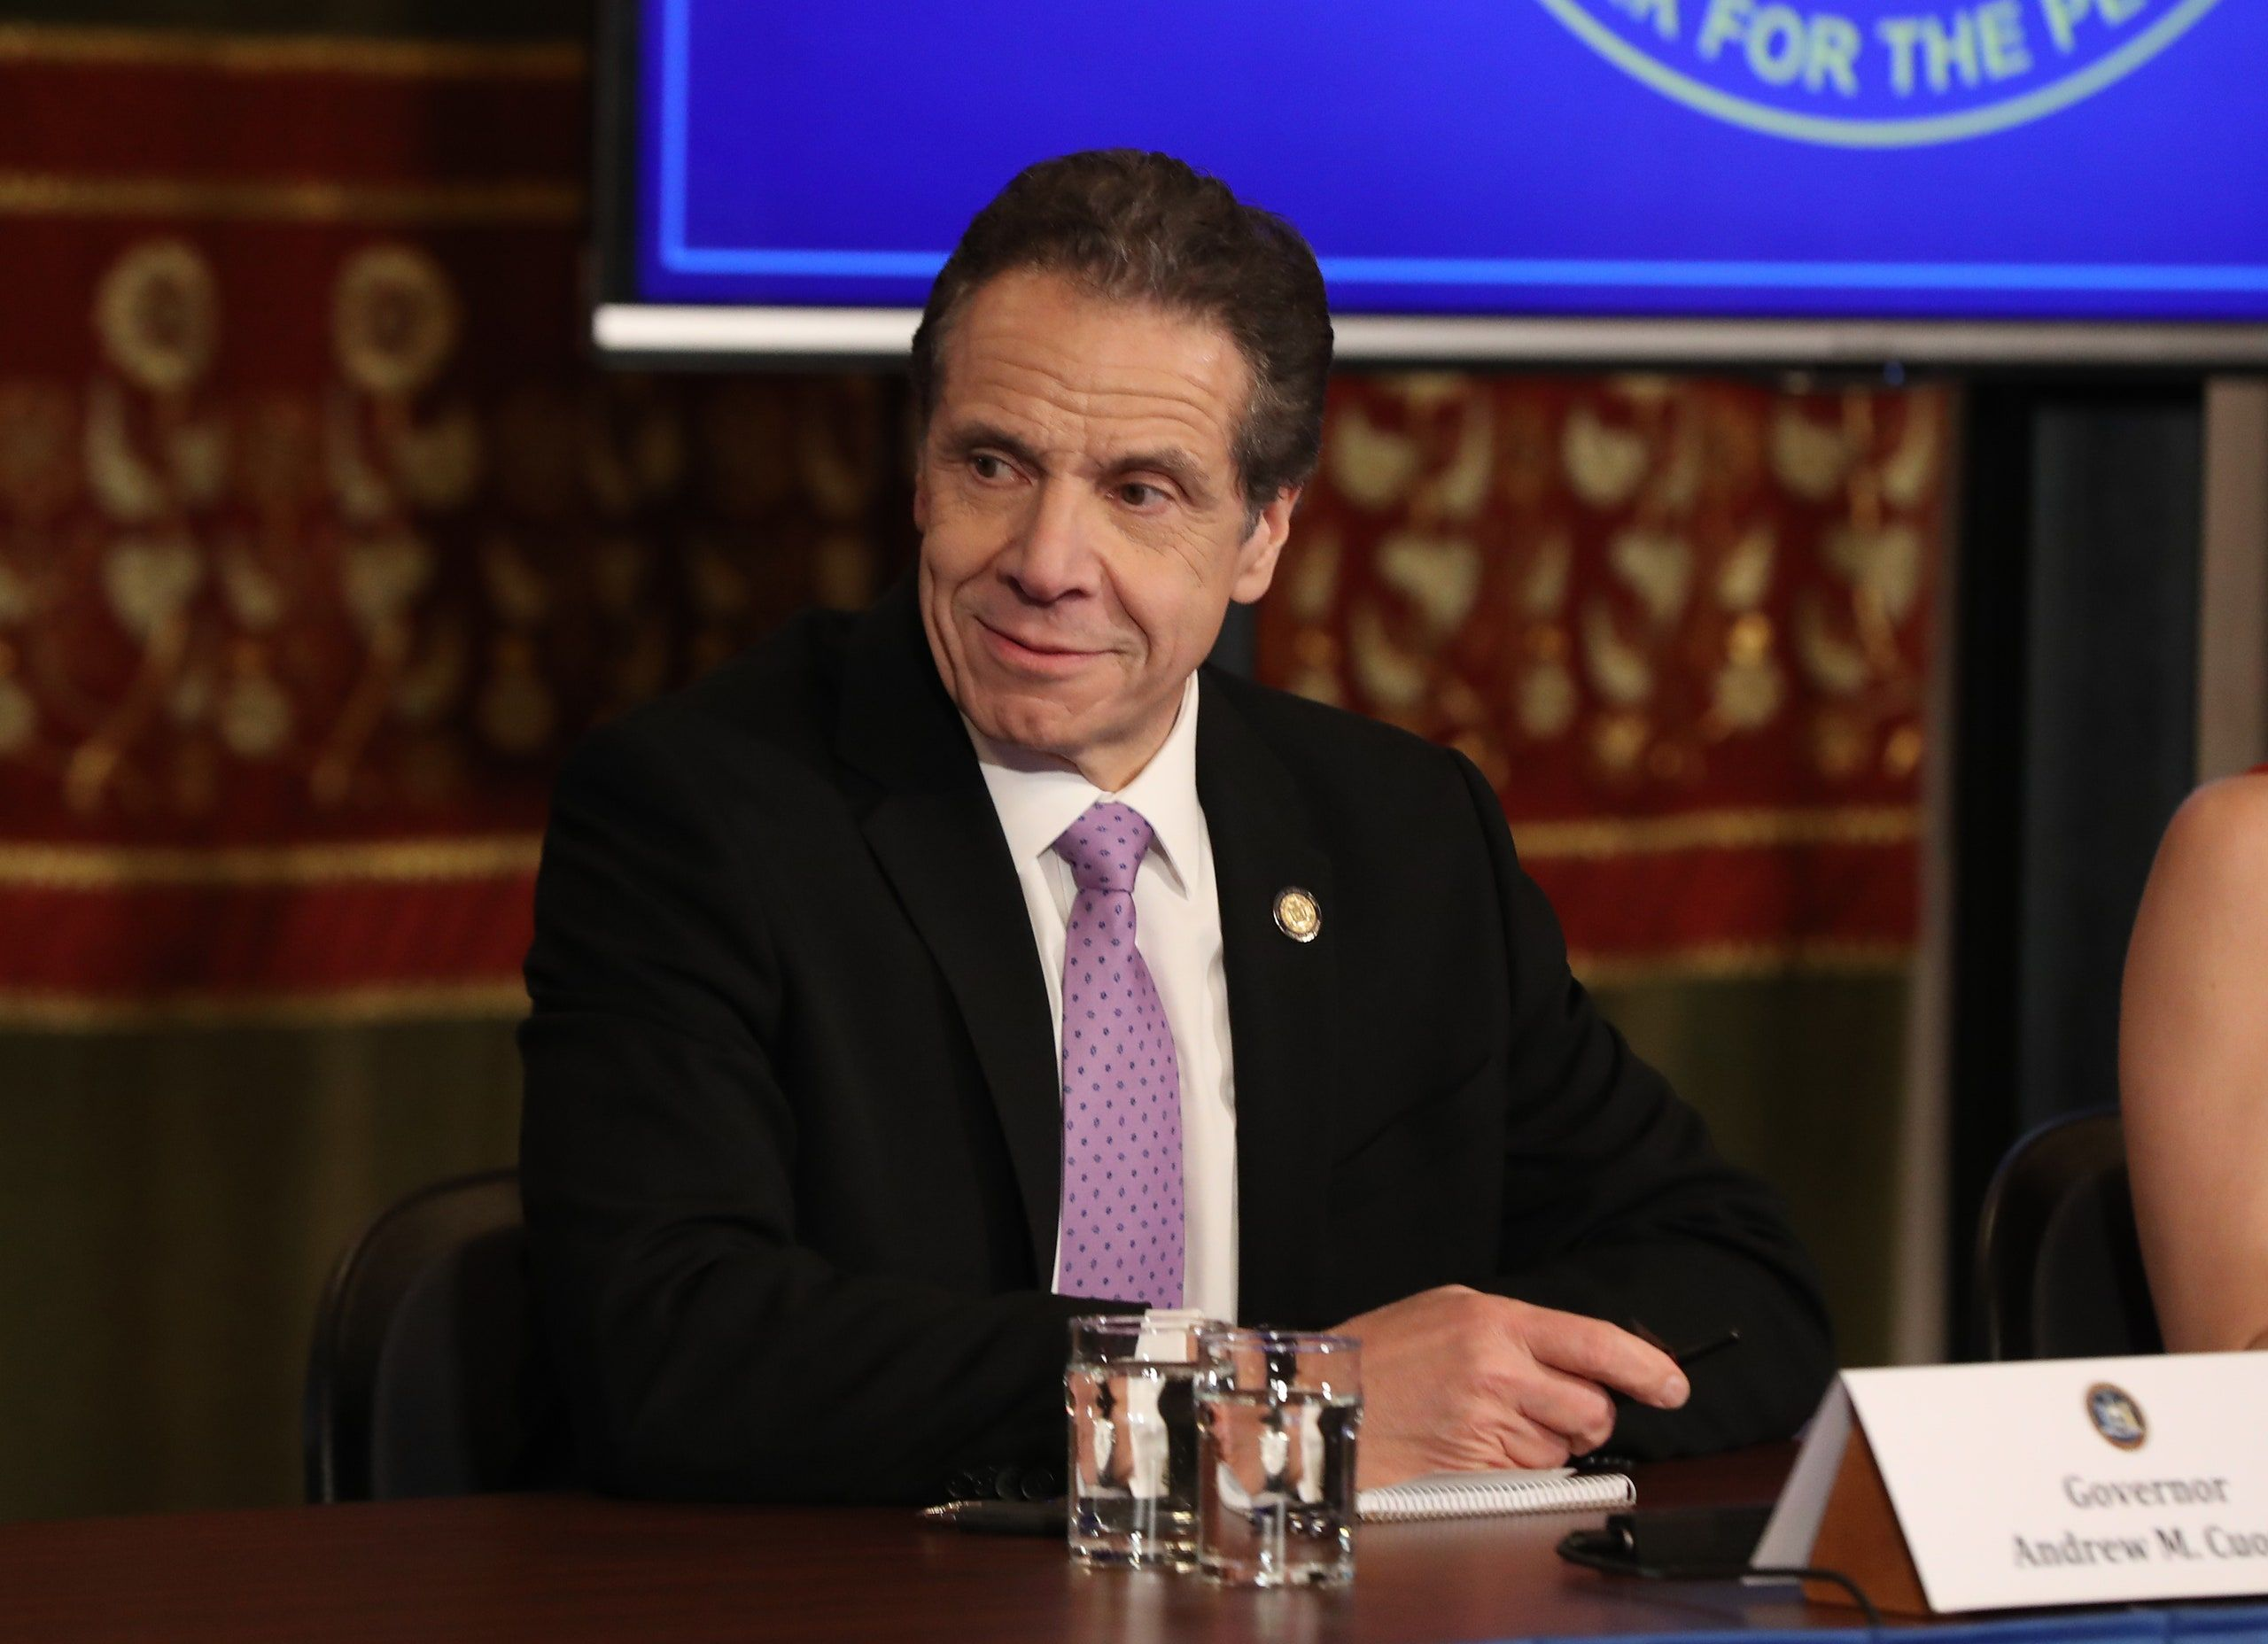 After Trump S Twitter Barrage Cuomo Responds Maybe He Should Get Up And Go To Work In 2020 Andrew Cuomo Andrew Governor